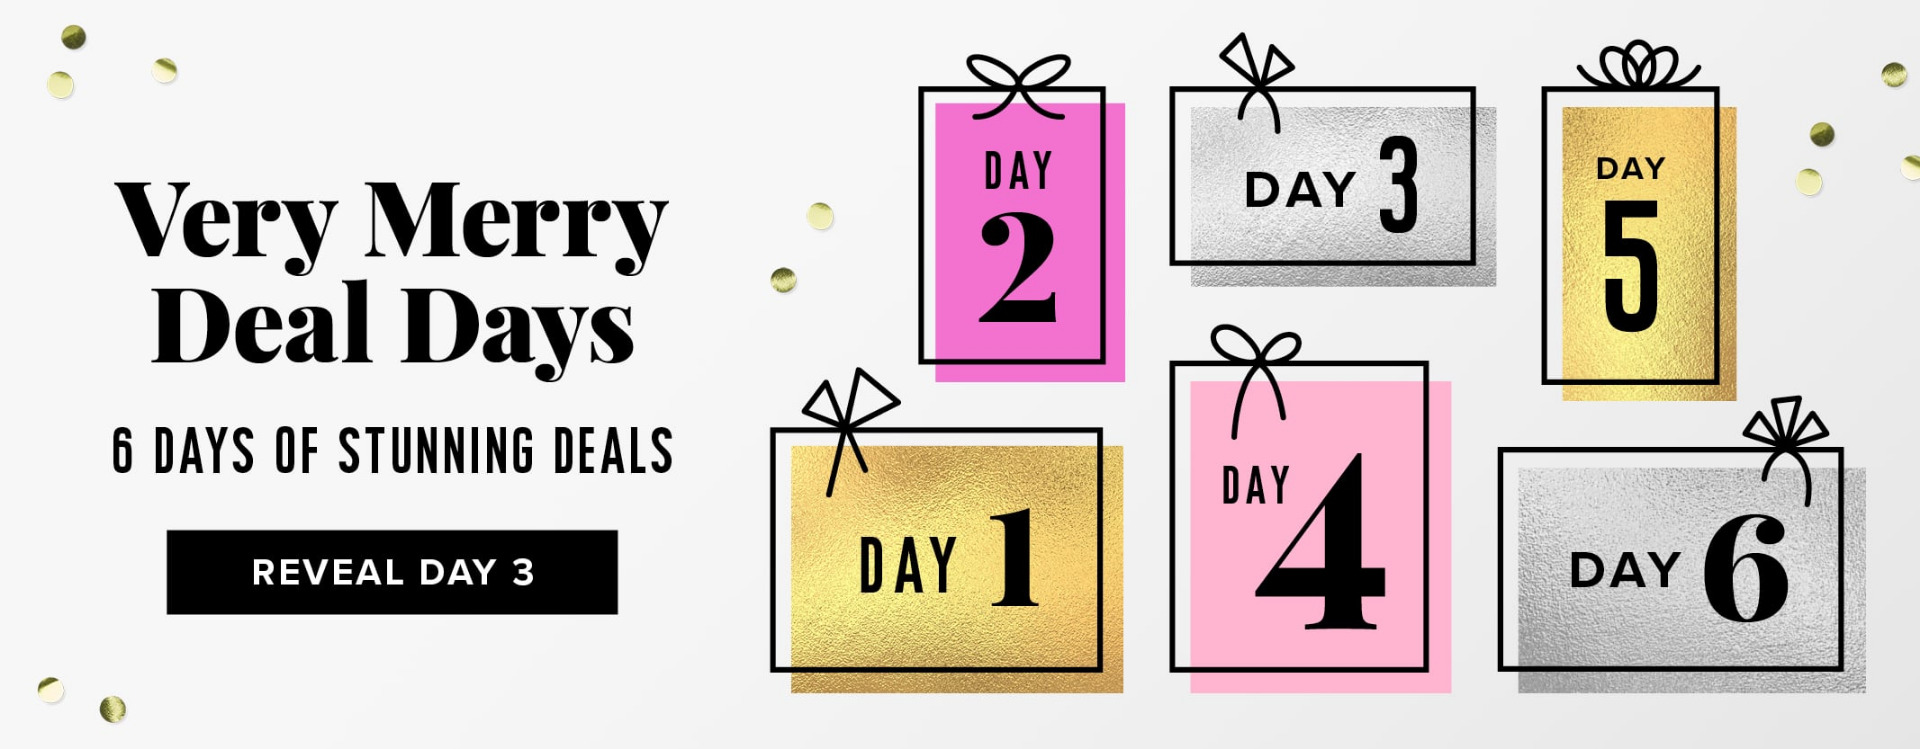 Very Merry Deal Days - Reveal Day 3